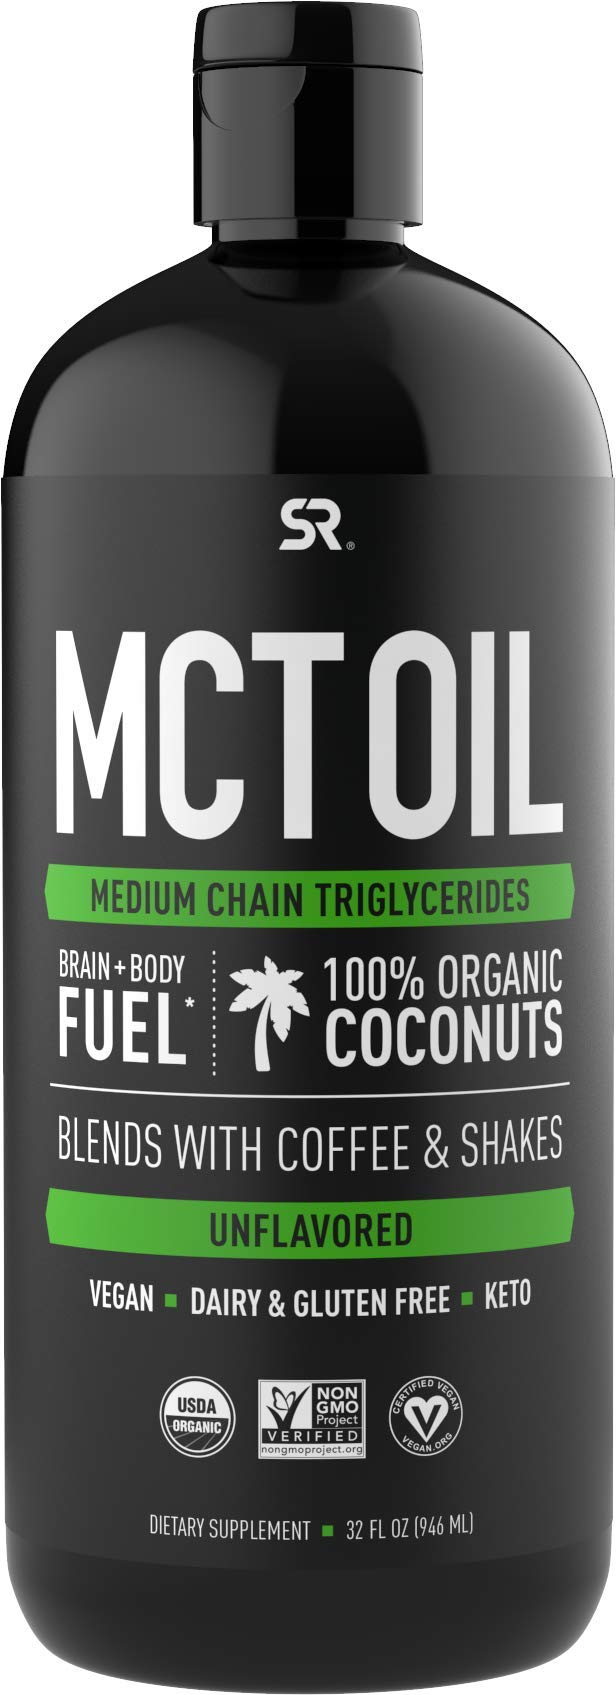 Premium MCT Oil from Organic Coconuts – Unflavored